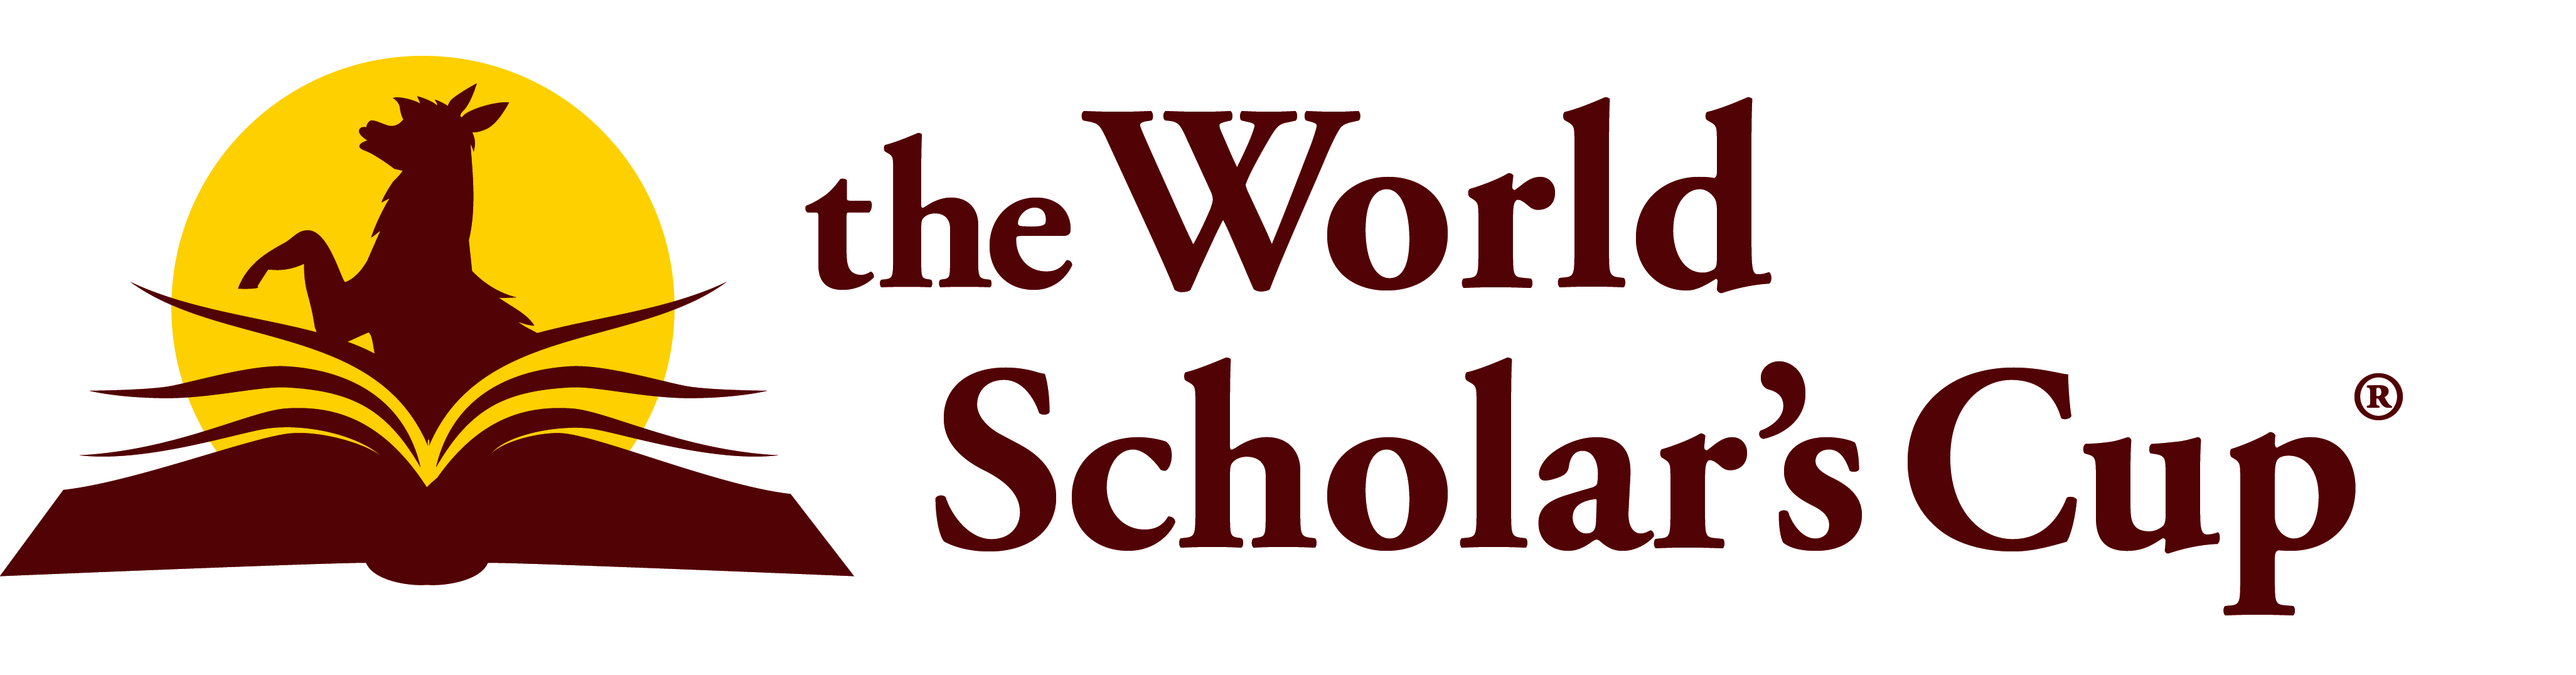 Image result for world scholaR'S cup global